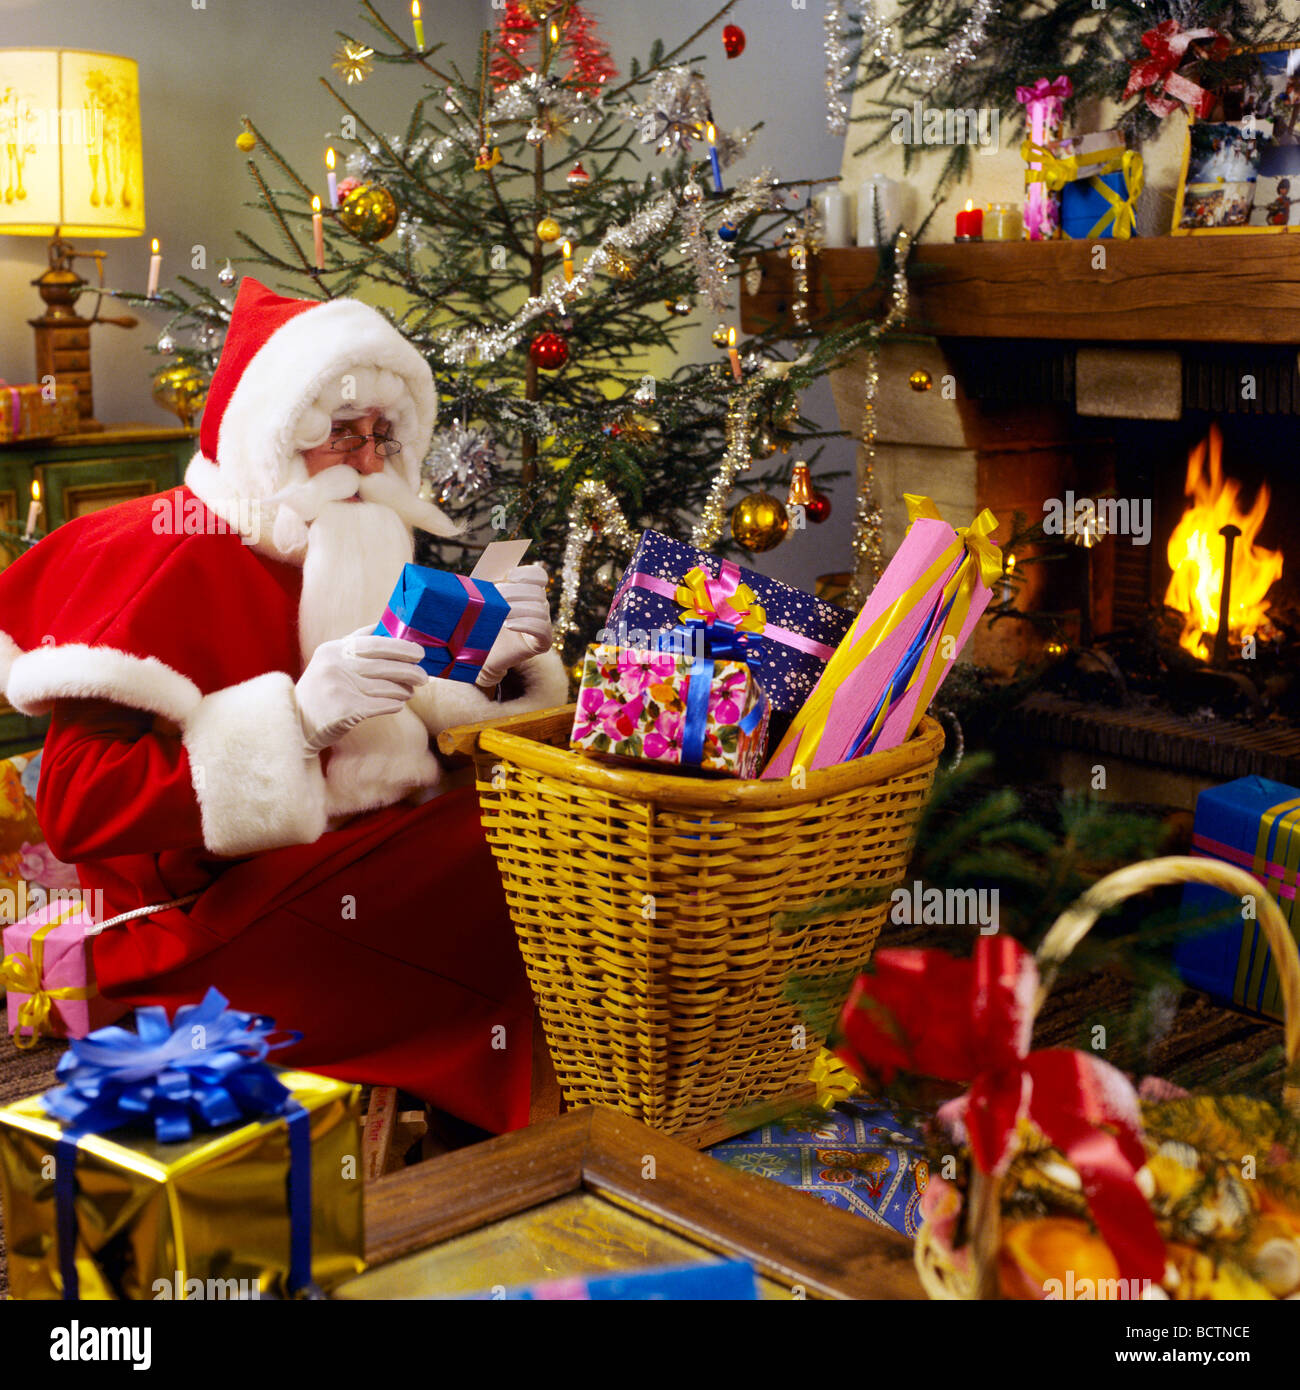 Picture Of Christmas Tree With Presents: MR SANTA CLAUS PREPARING CHRISTMAS PRESENTS UNDER THE TREE